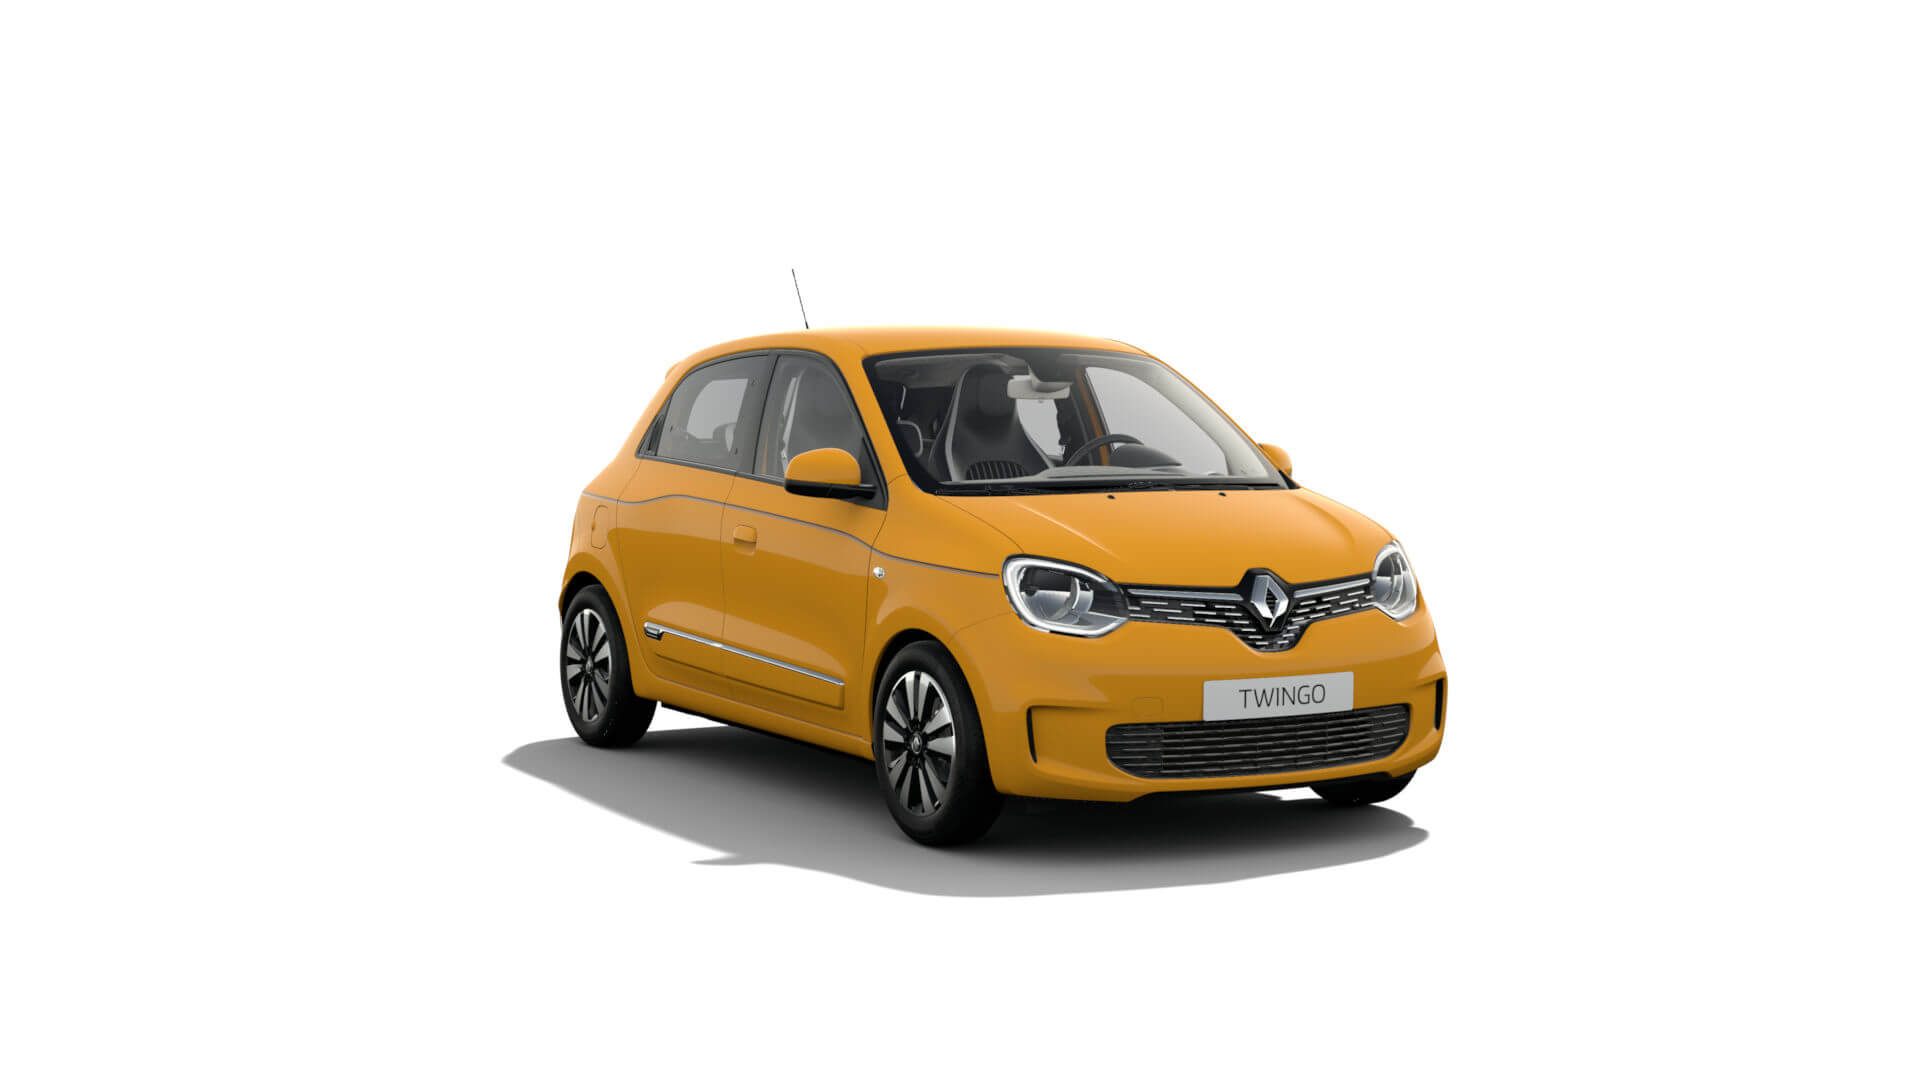 Automodell Senfgelb - Renault Twingo - Renault Ahrens Hannover